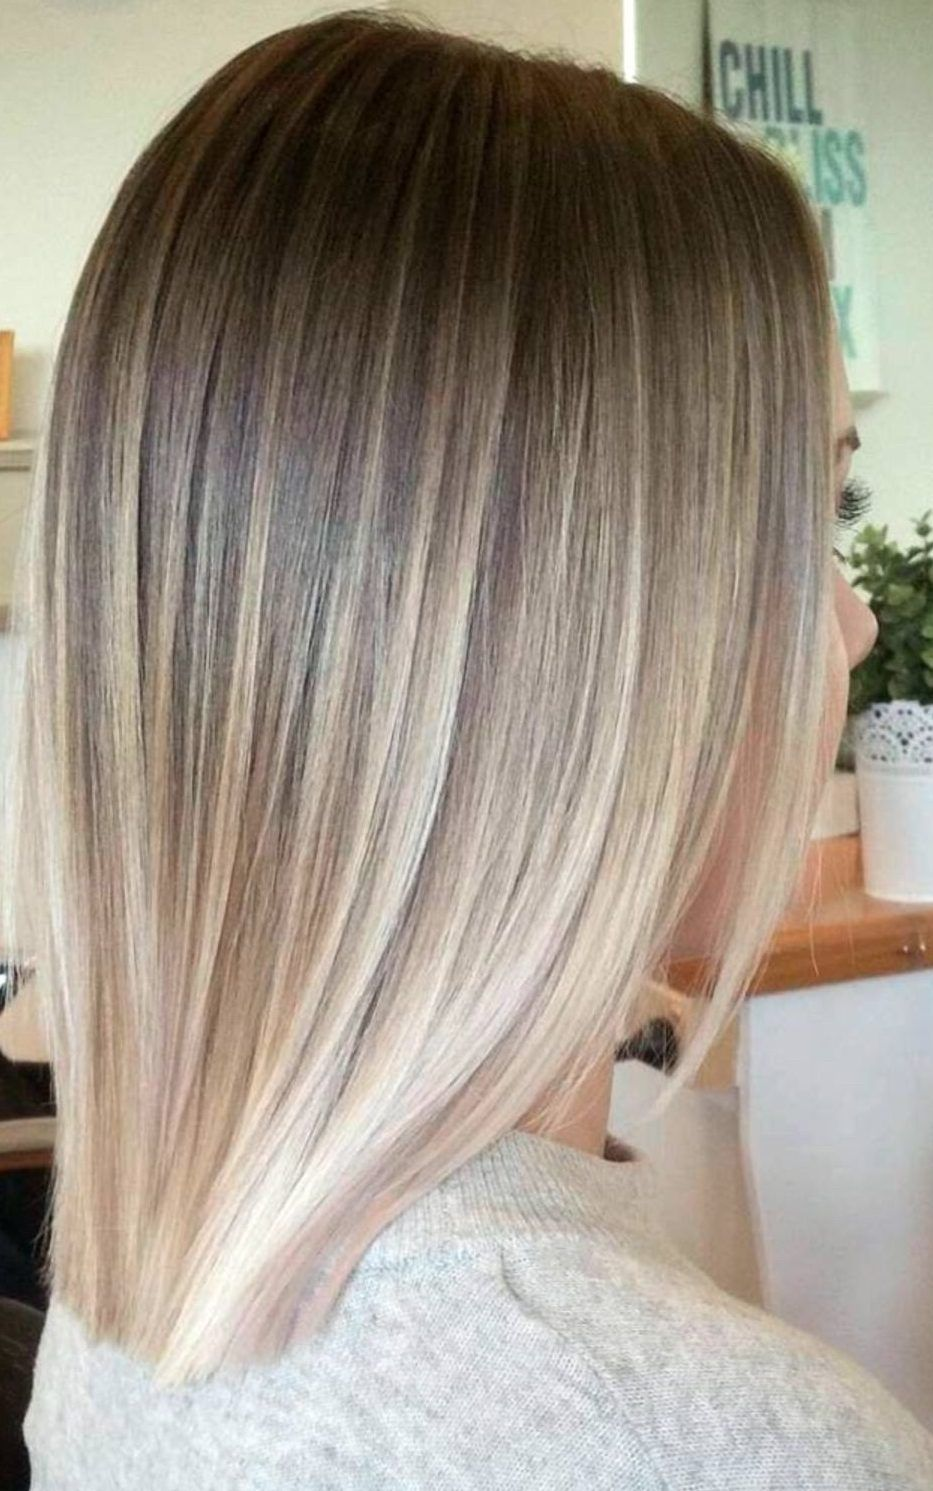 50 Blonde Hair Color Ideas For Short Hair Blonde Inspirations For 2019 With Hairstyle In 2020 Short Hair Balayage Short Blonde Hair Short Ombre Hair